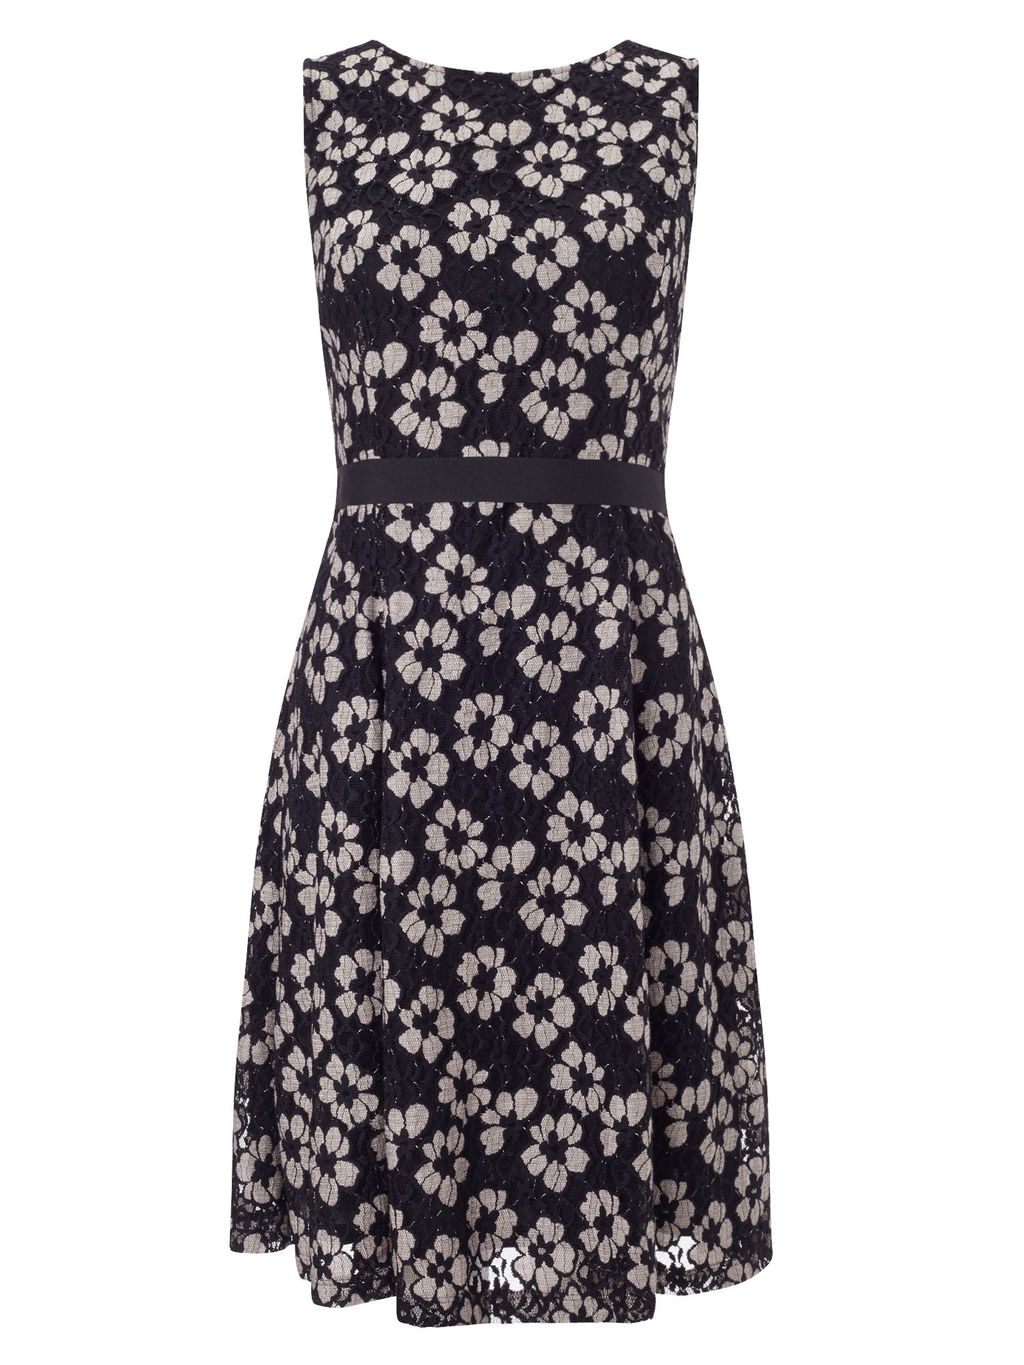 Black And Oyster Lace Dress - neckline: round neck; sleeve style: sleeveless; secondary colour: mid grey; predominant colour: black; occasions: evening, occasion; length: just above the knee; fit: fitted at waist & bust; style: fit & flare; fibres: nylon - mix; waist detail: feature waist detail; sleeve length: sleeveless; texture group: lace; pattern type: fabric; pattern size: standard; pattern: patterned/print; season: s/s 2016; wardrobe: event